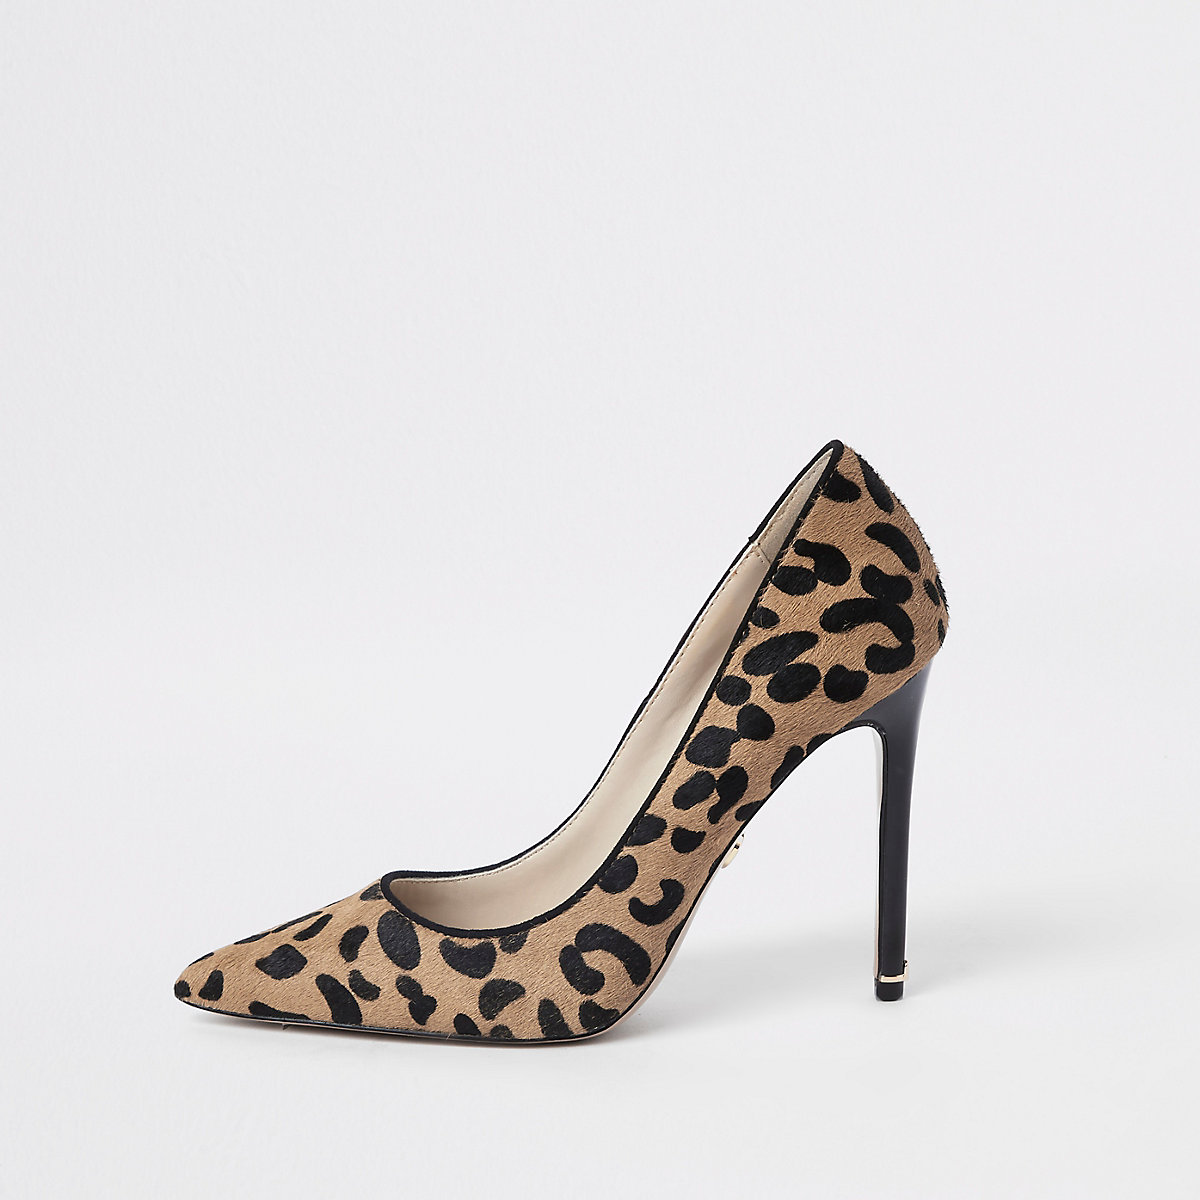 Brown leather leopard print court shoes